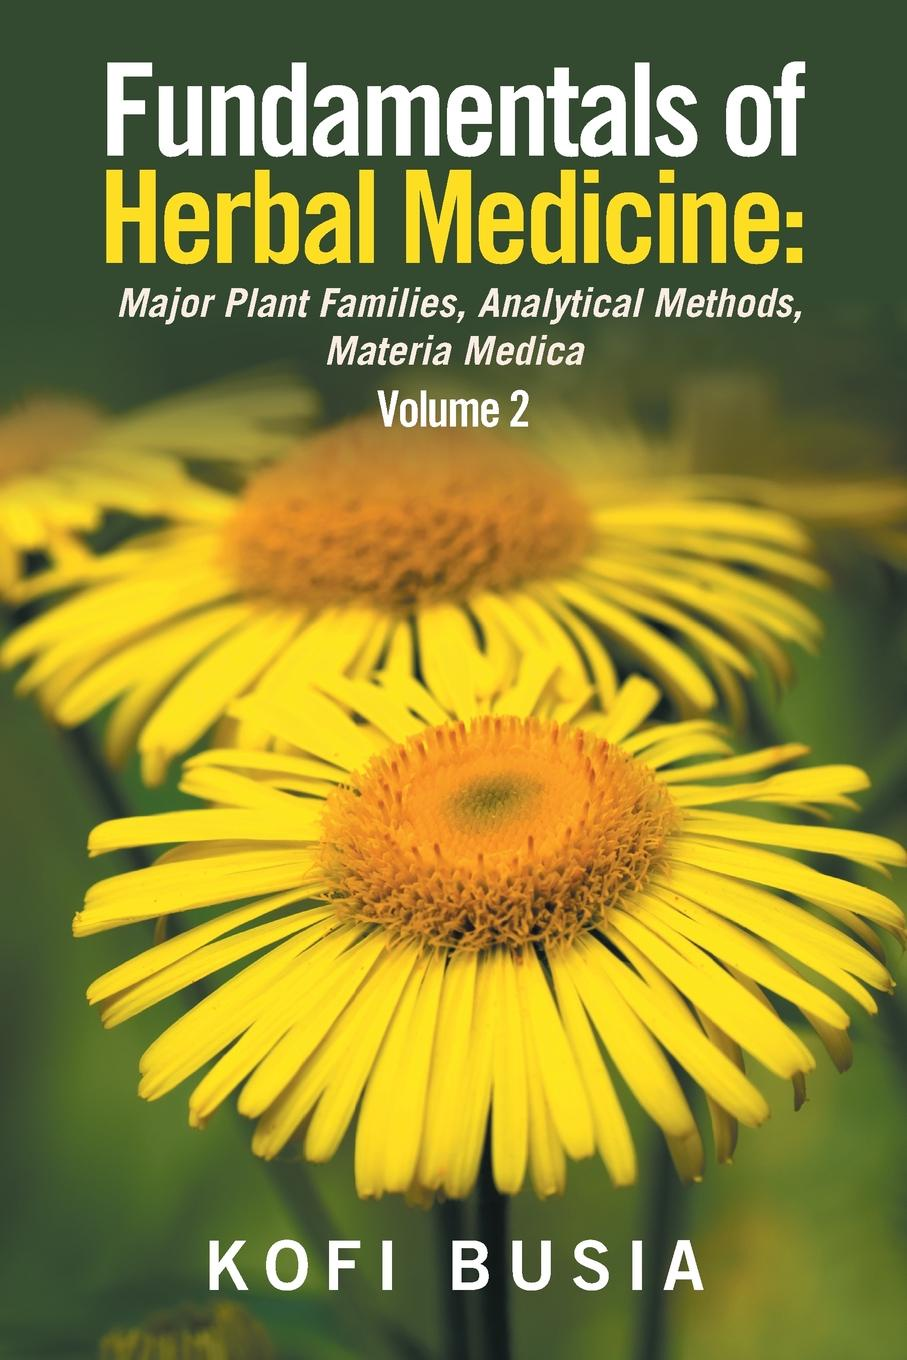 Dr Kofi Busia Fundamentals of Herbal Medicine. Major Plant Families, Analytical Methods, Materia Medica Volume 2 peter p good the family flora and materia medica botanica volume 2